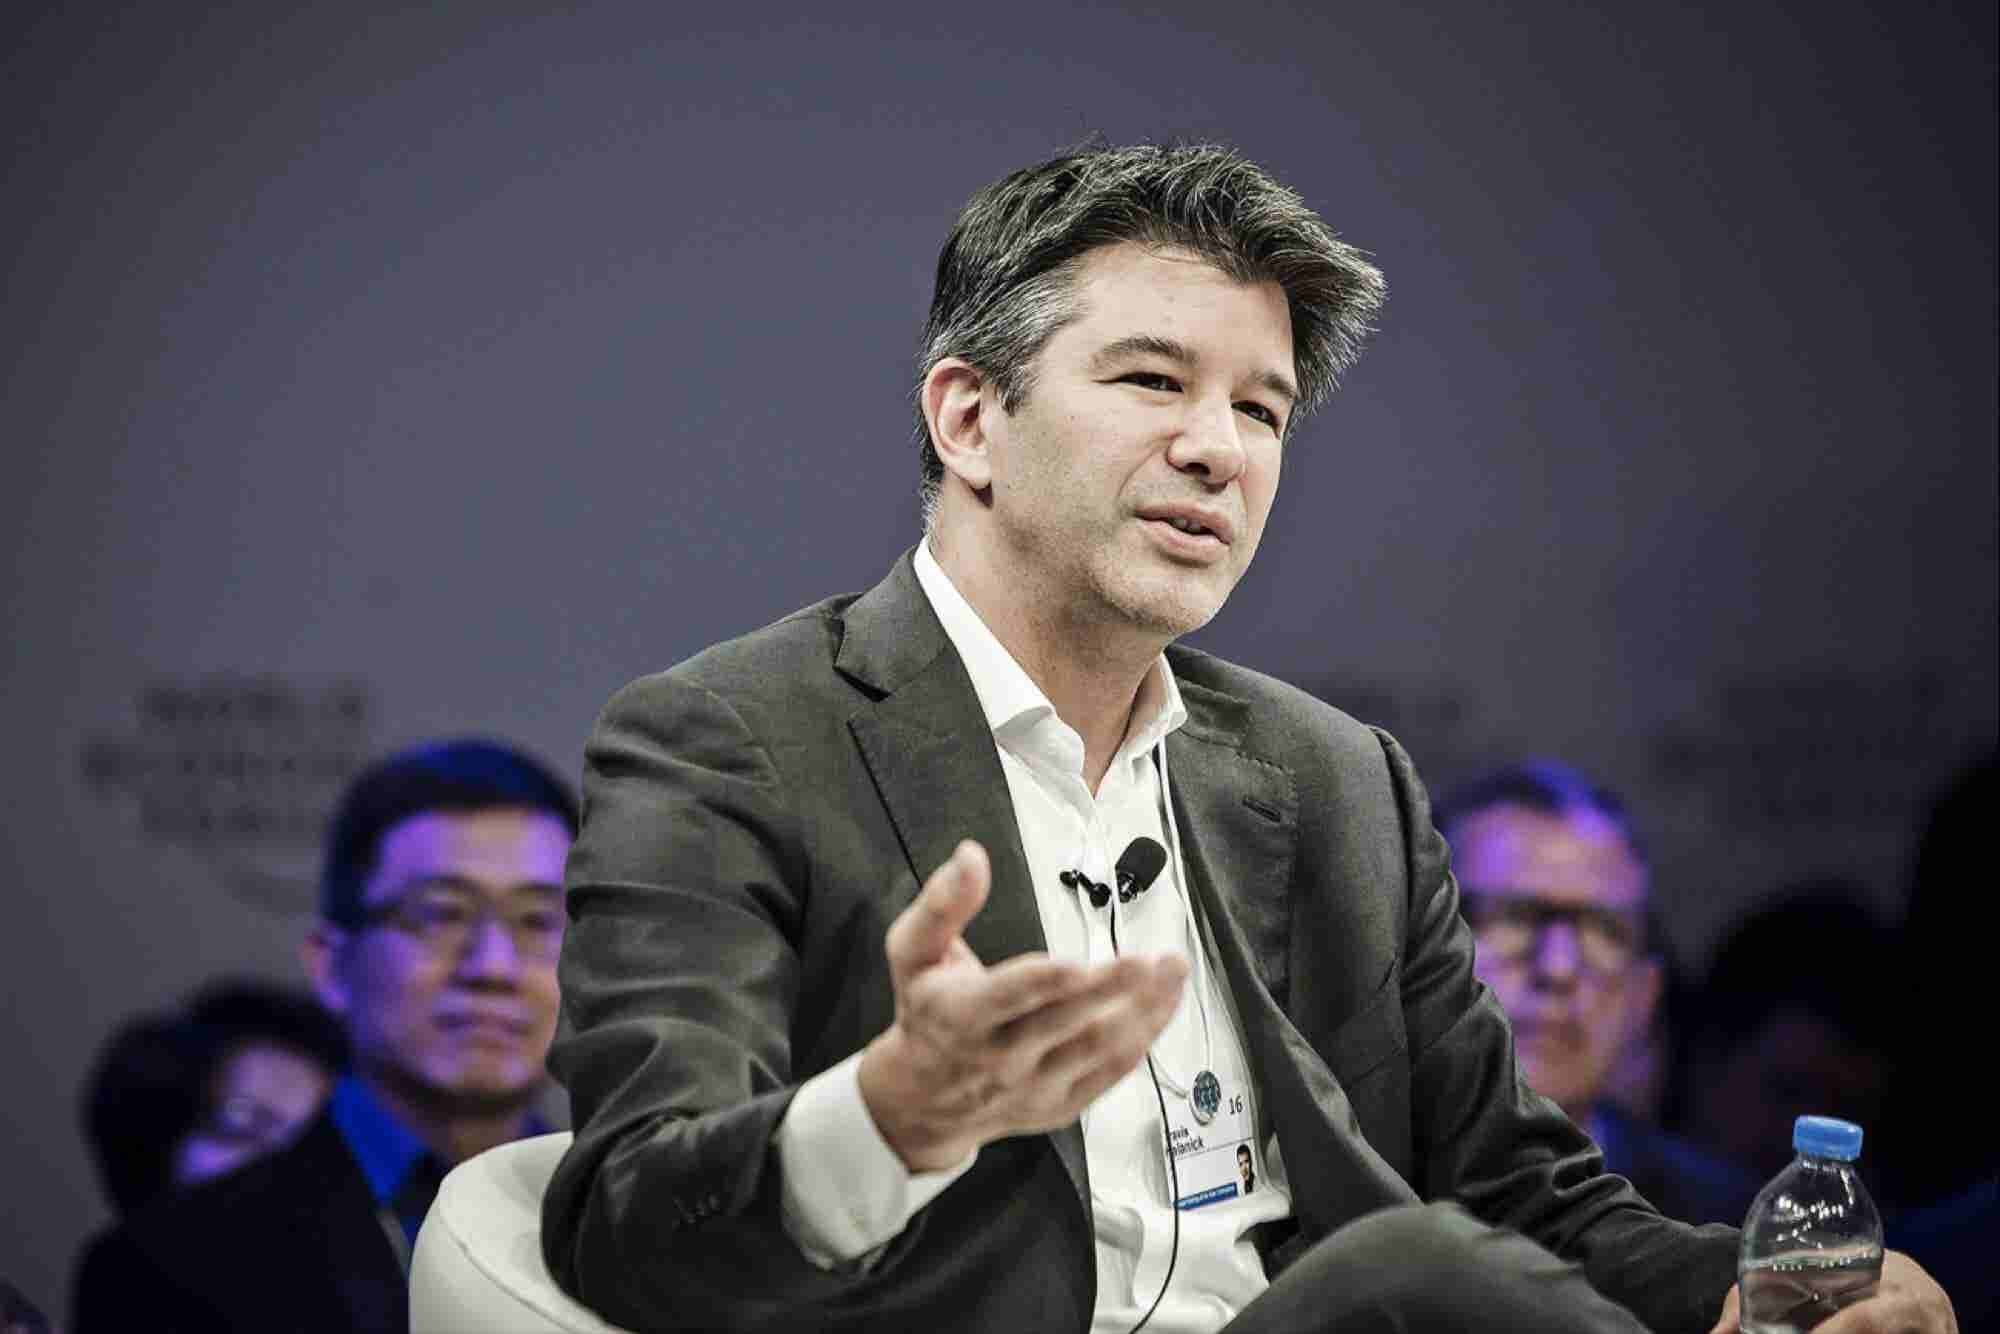 A 2013 Letter From Uber's Travis Kalanick Lays Out Sex Rules for Employees at Company Party